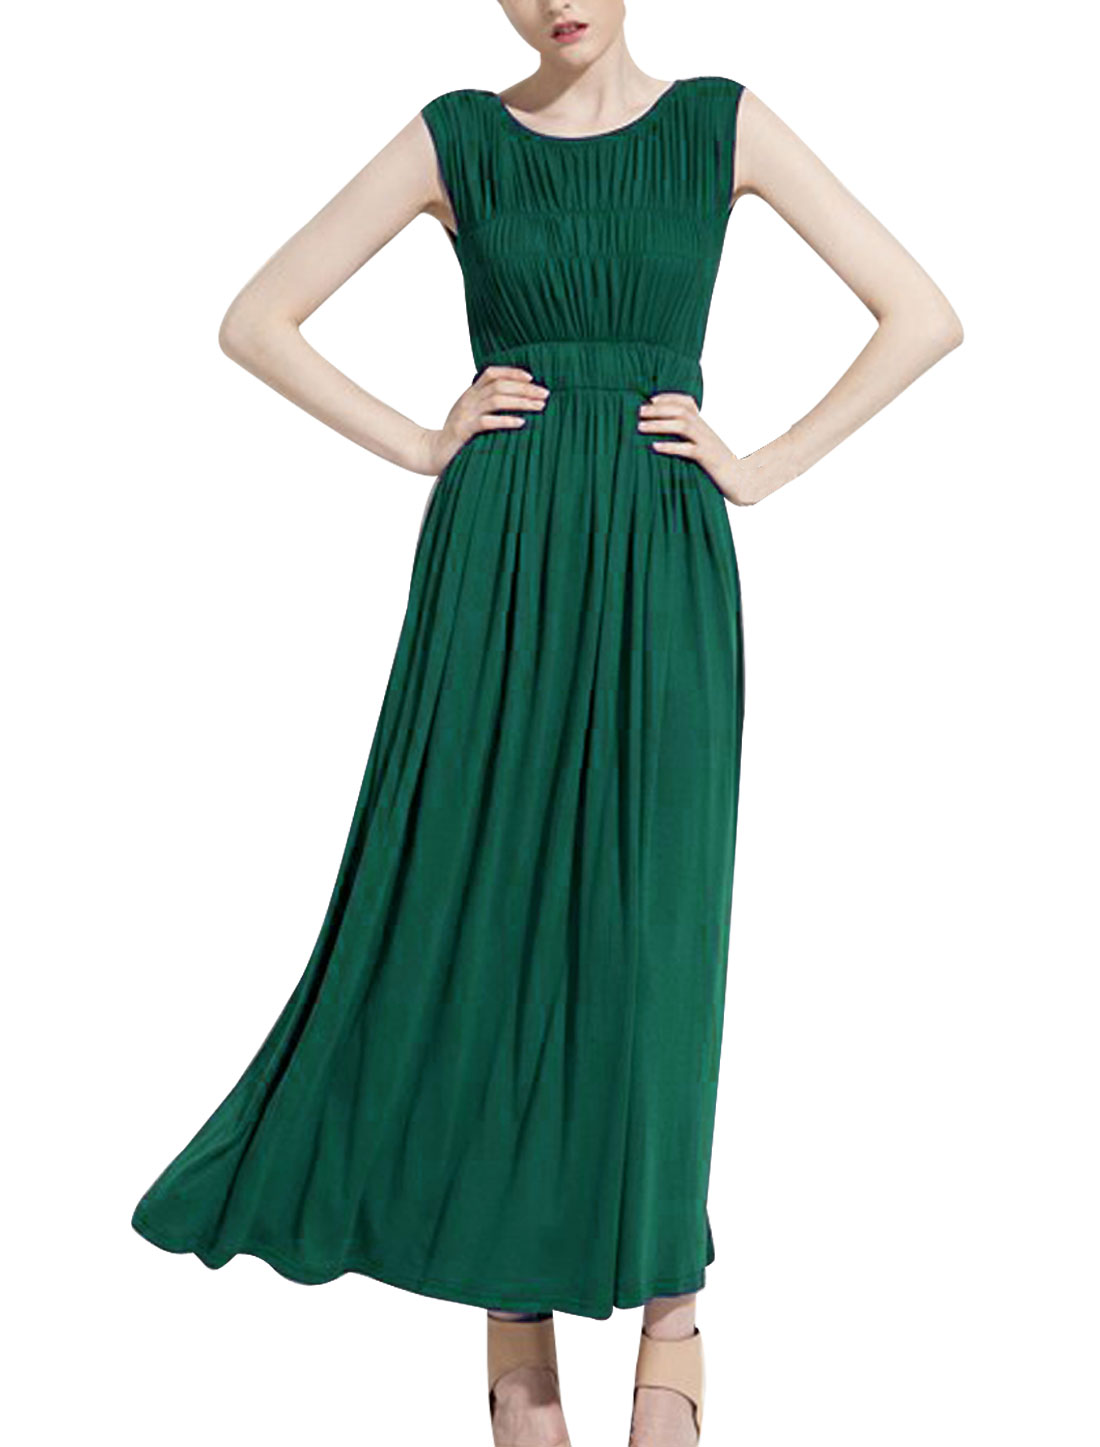 Ladies Elastic Waist Full Length Layered Chic Dress Green XS